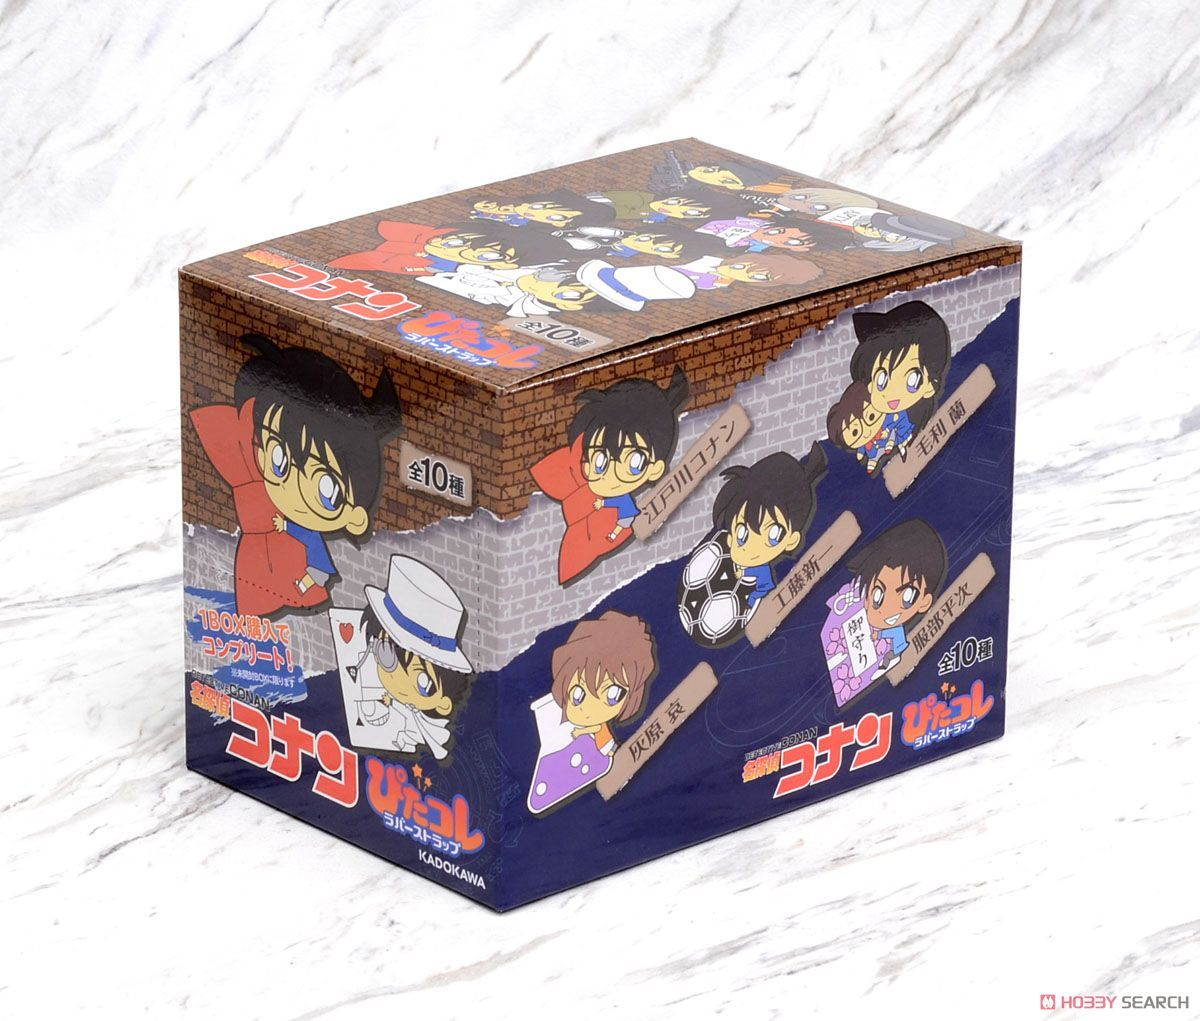 HS Detective Conan Pitacole Rubber Strap (Set of 10) (Anime Toy ...